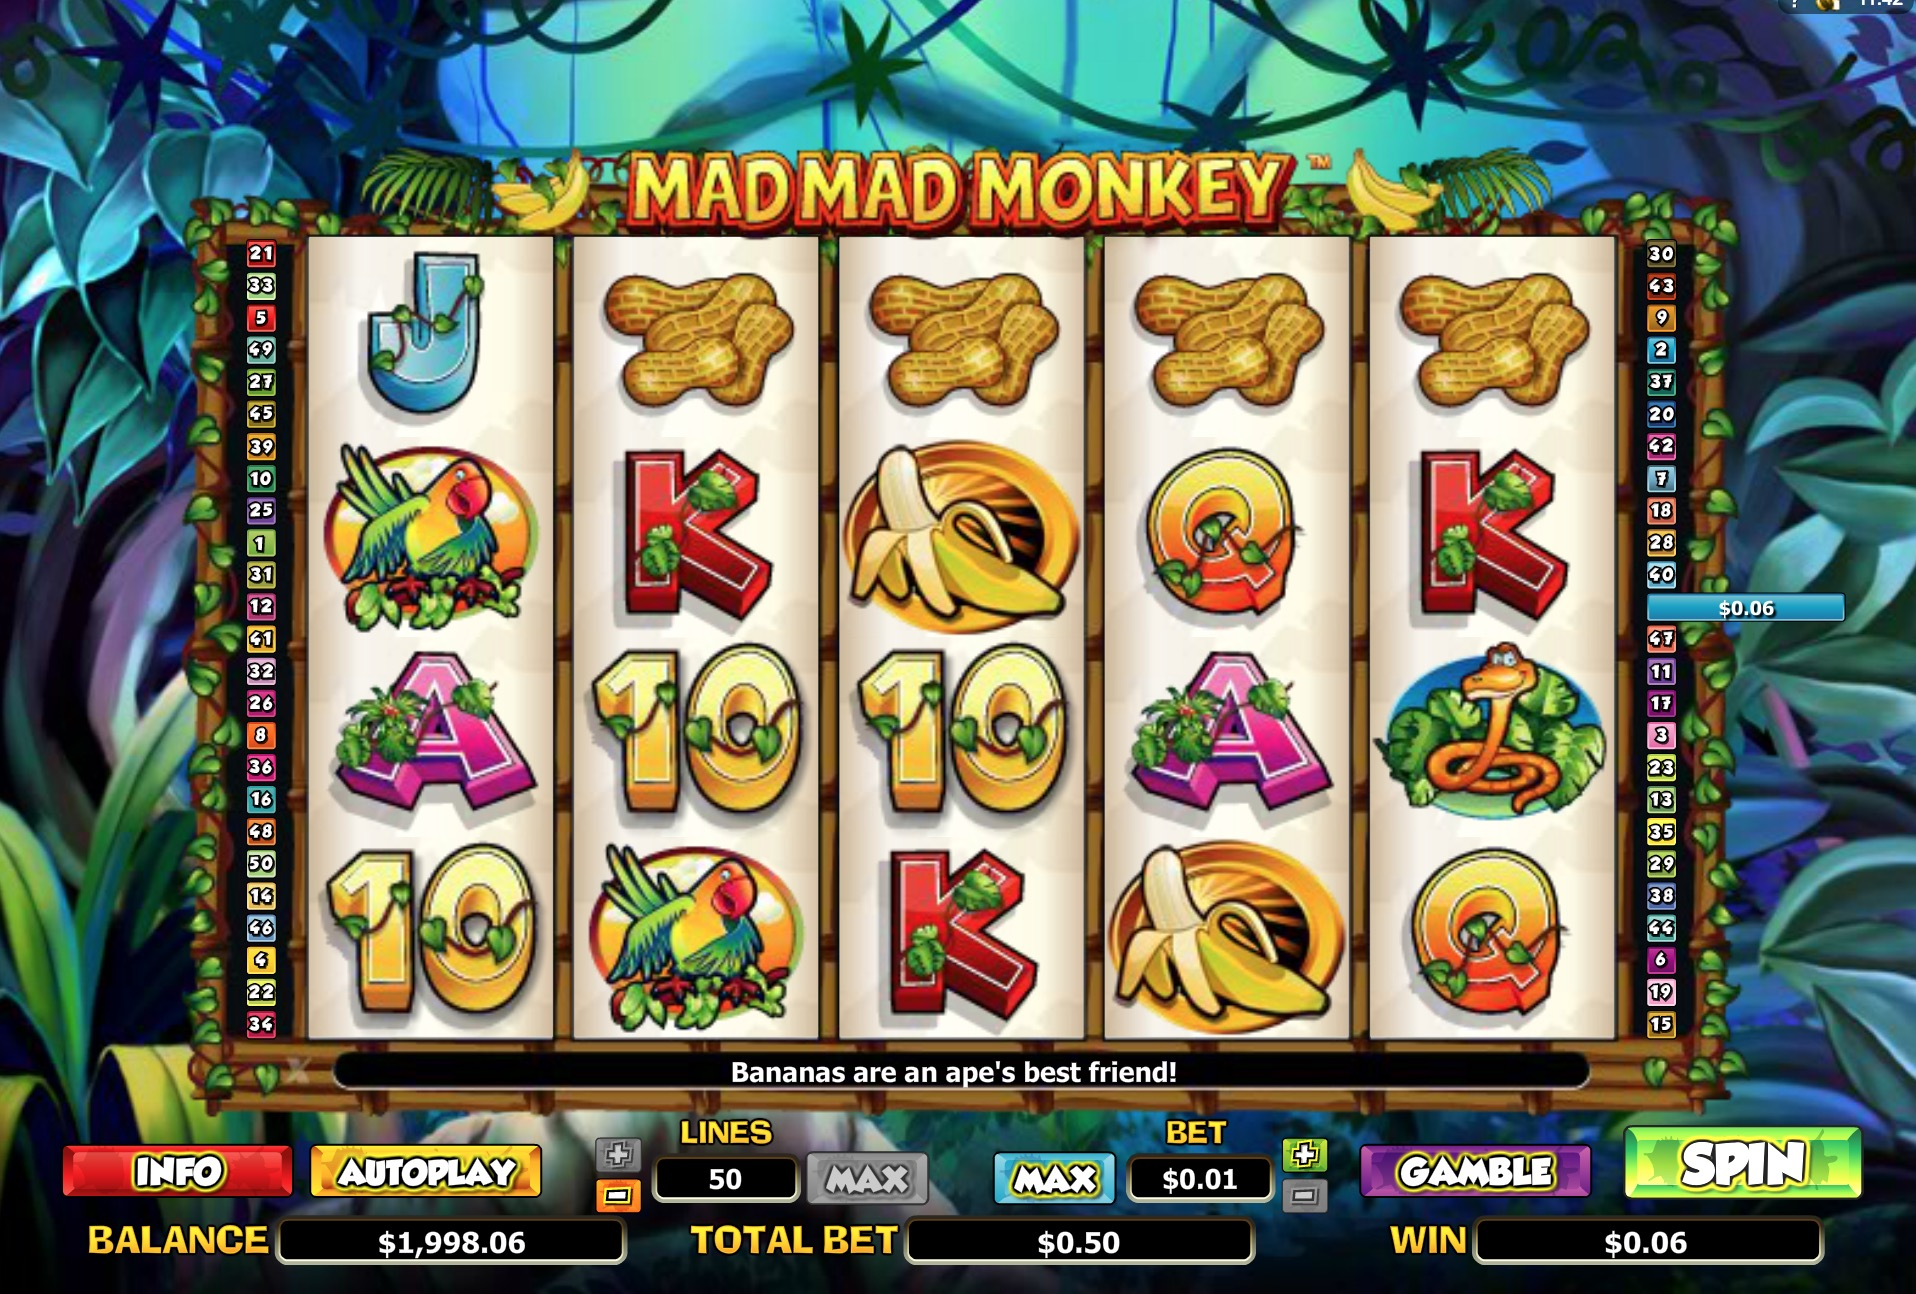 Gameplay of Mad Mad Monkey